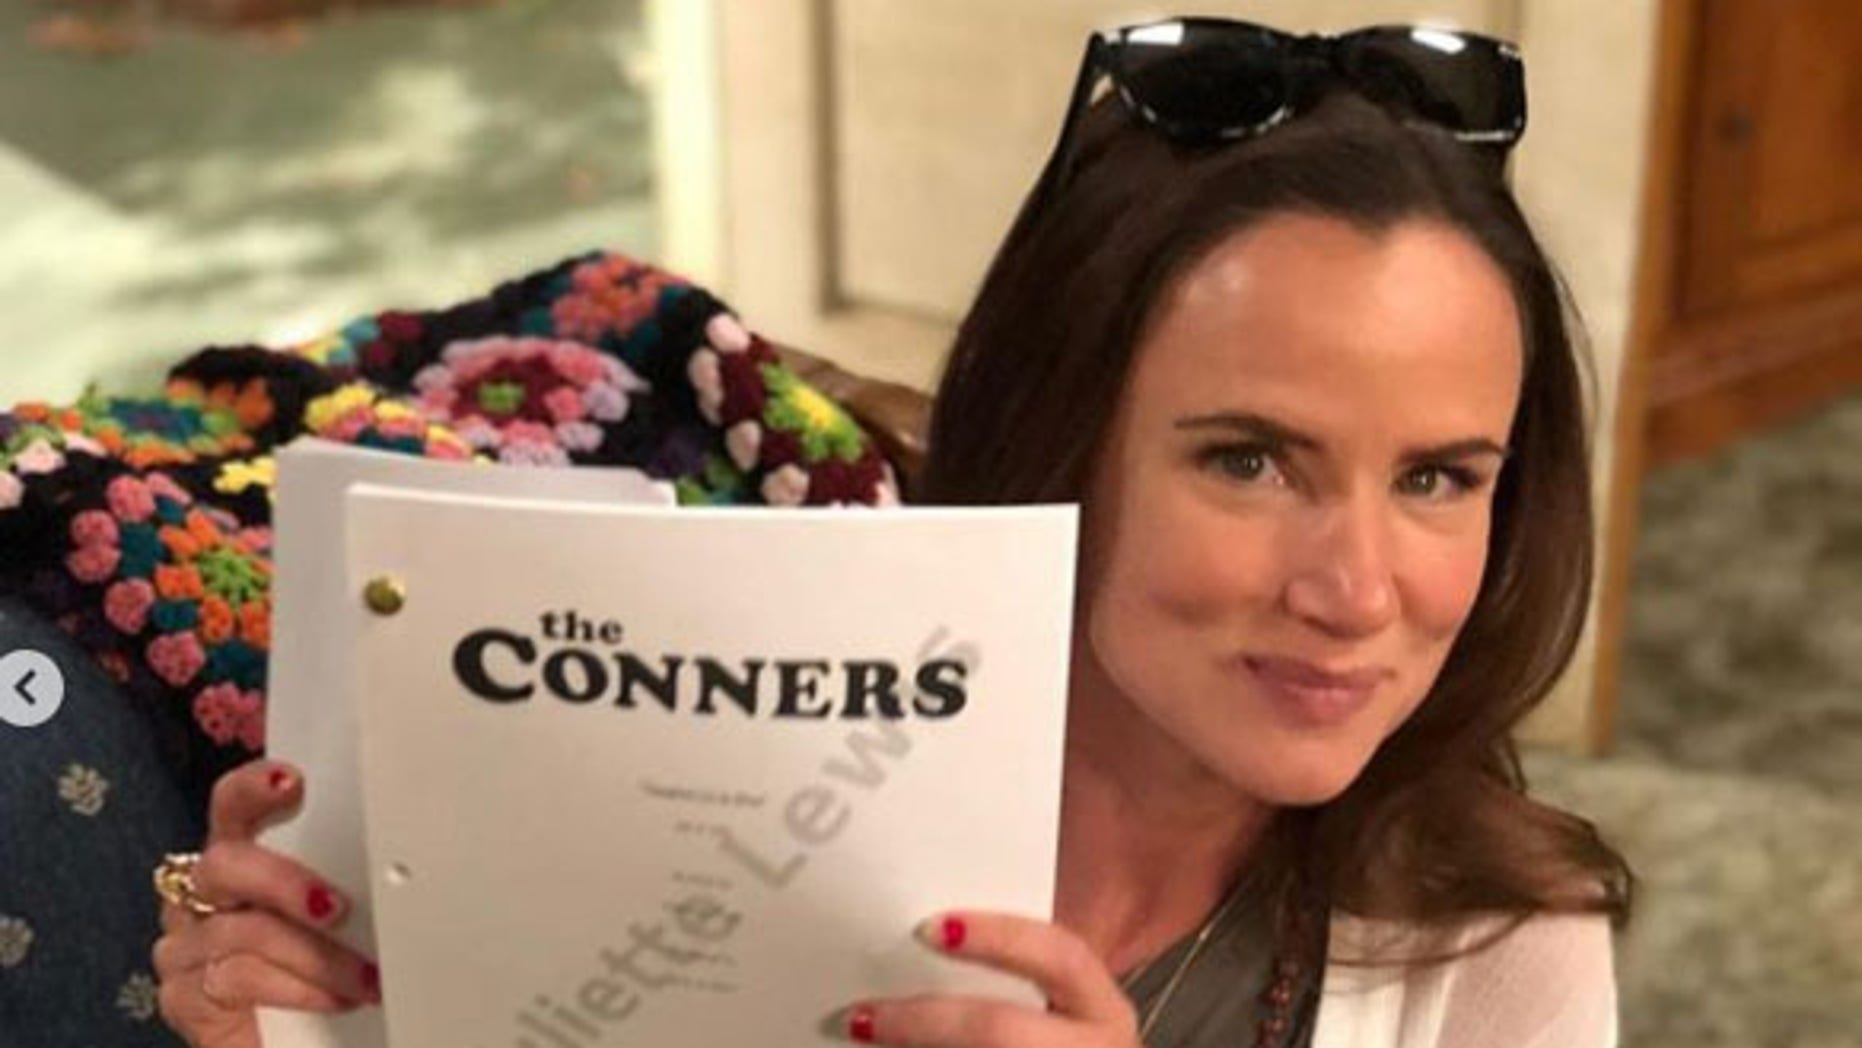 The Conners\' adds Juliette Lewis as cast member | Fox News